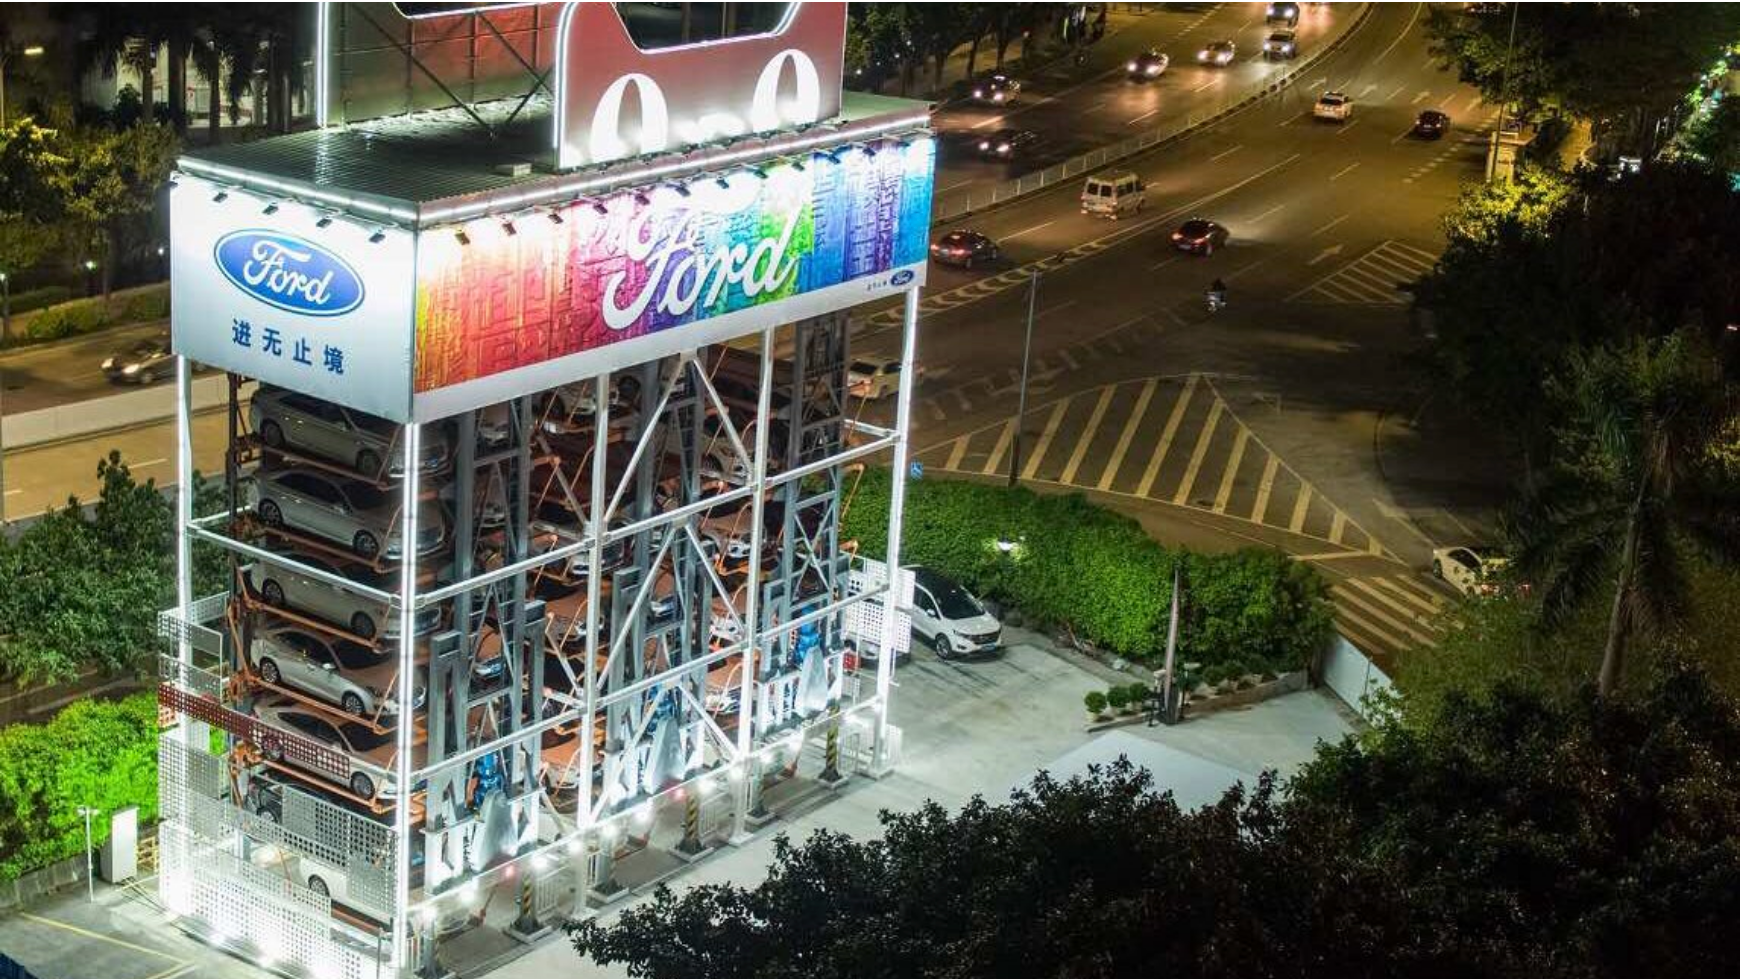 The car vending machine in Guangzhou (Alibaba Group)